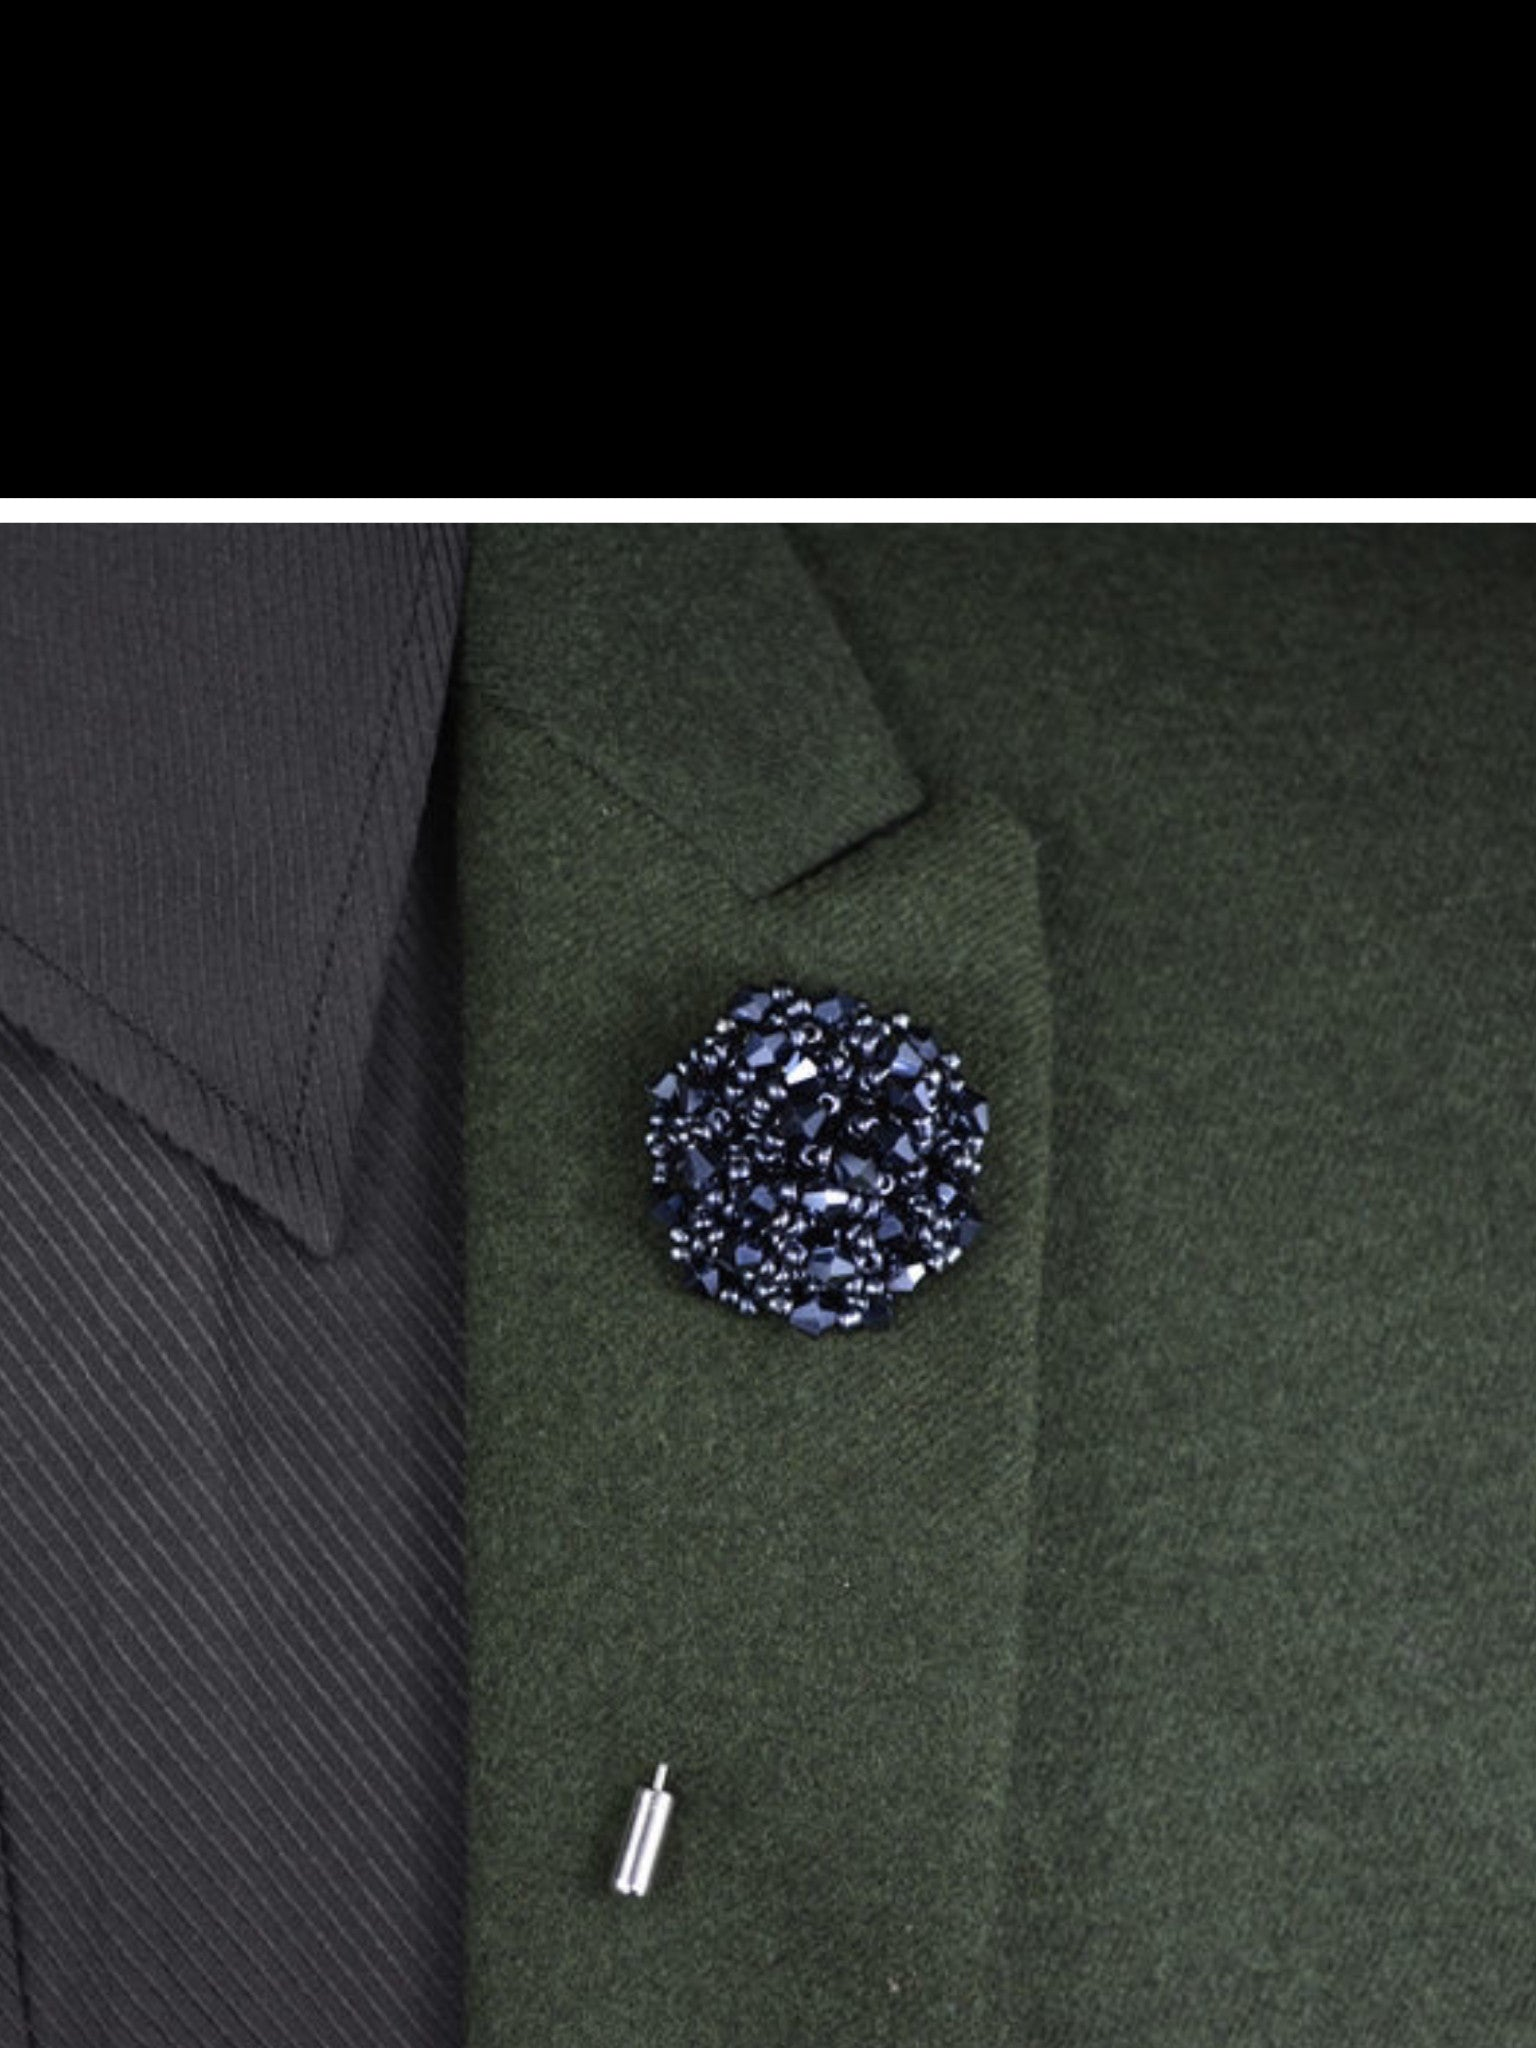 cloth mens western black handmade larger popular brooches suit image friday pcs pin metal p bouquet korean womens brooch